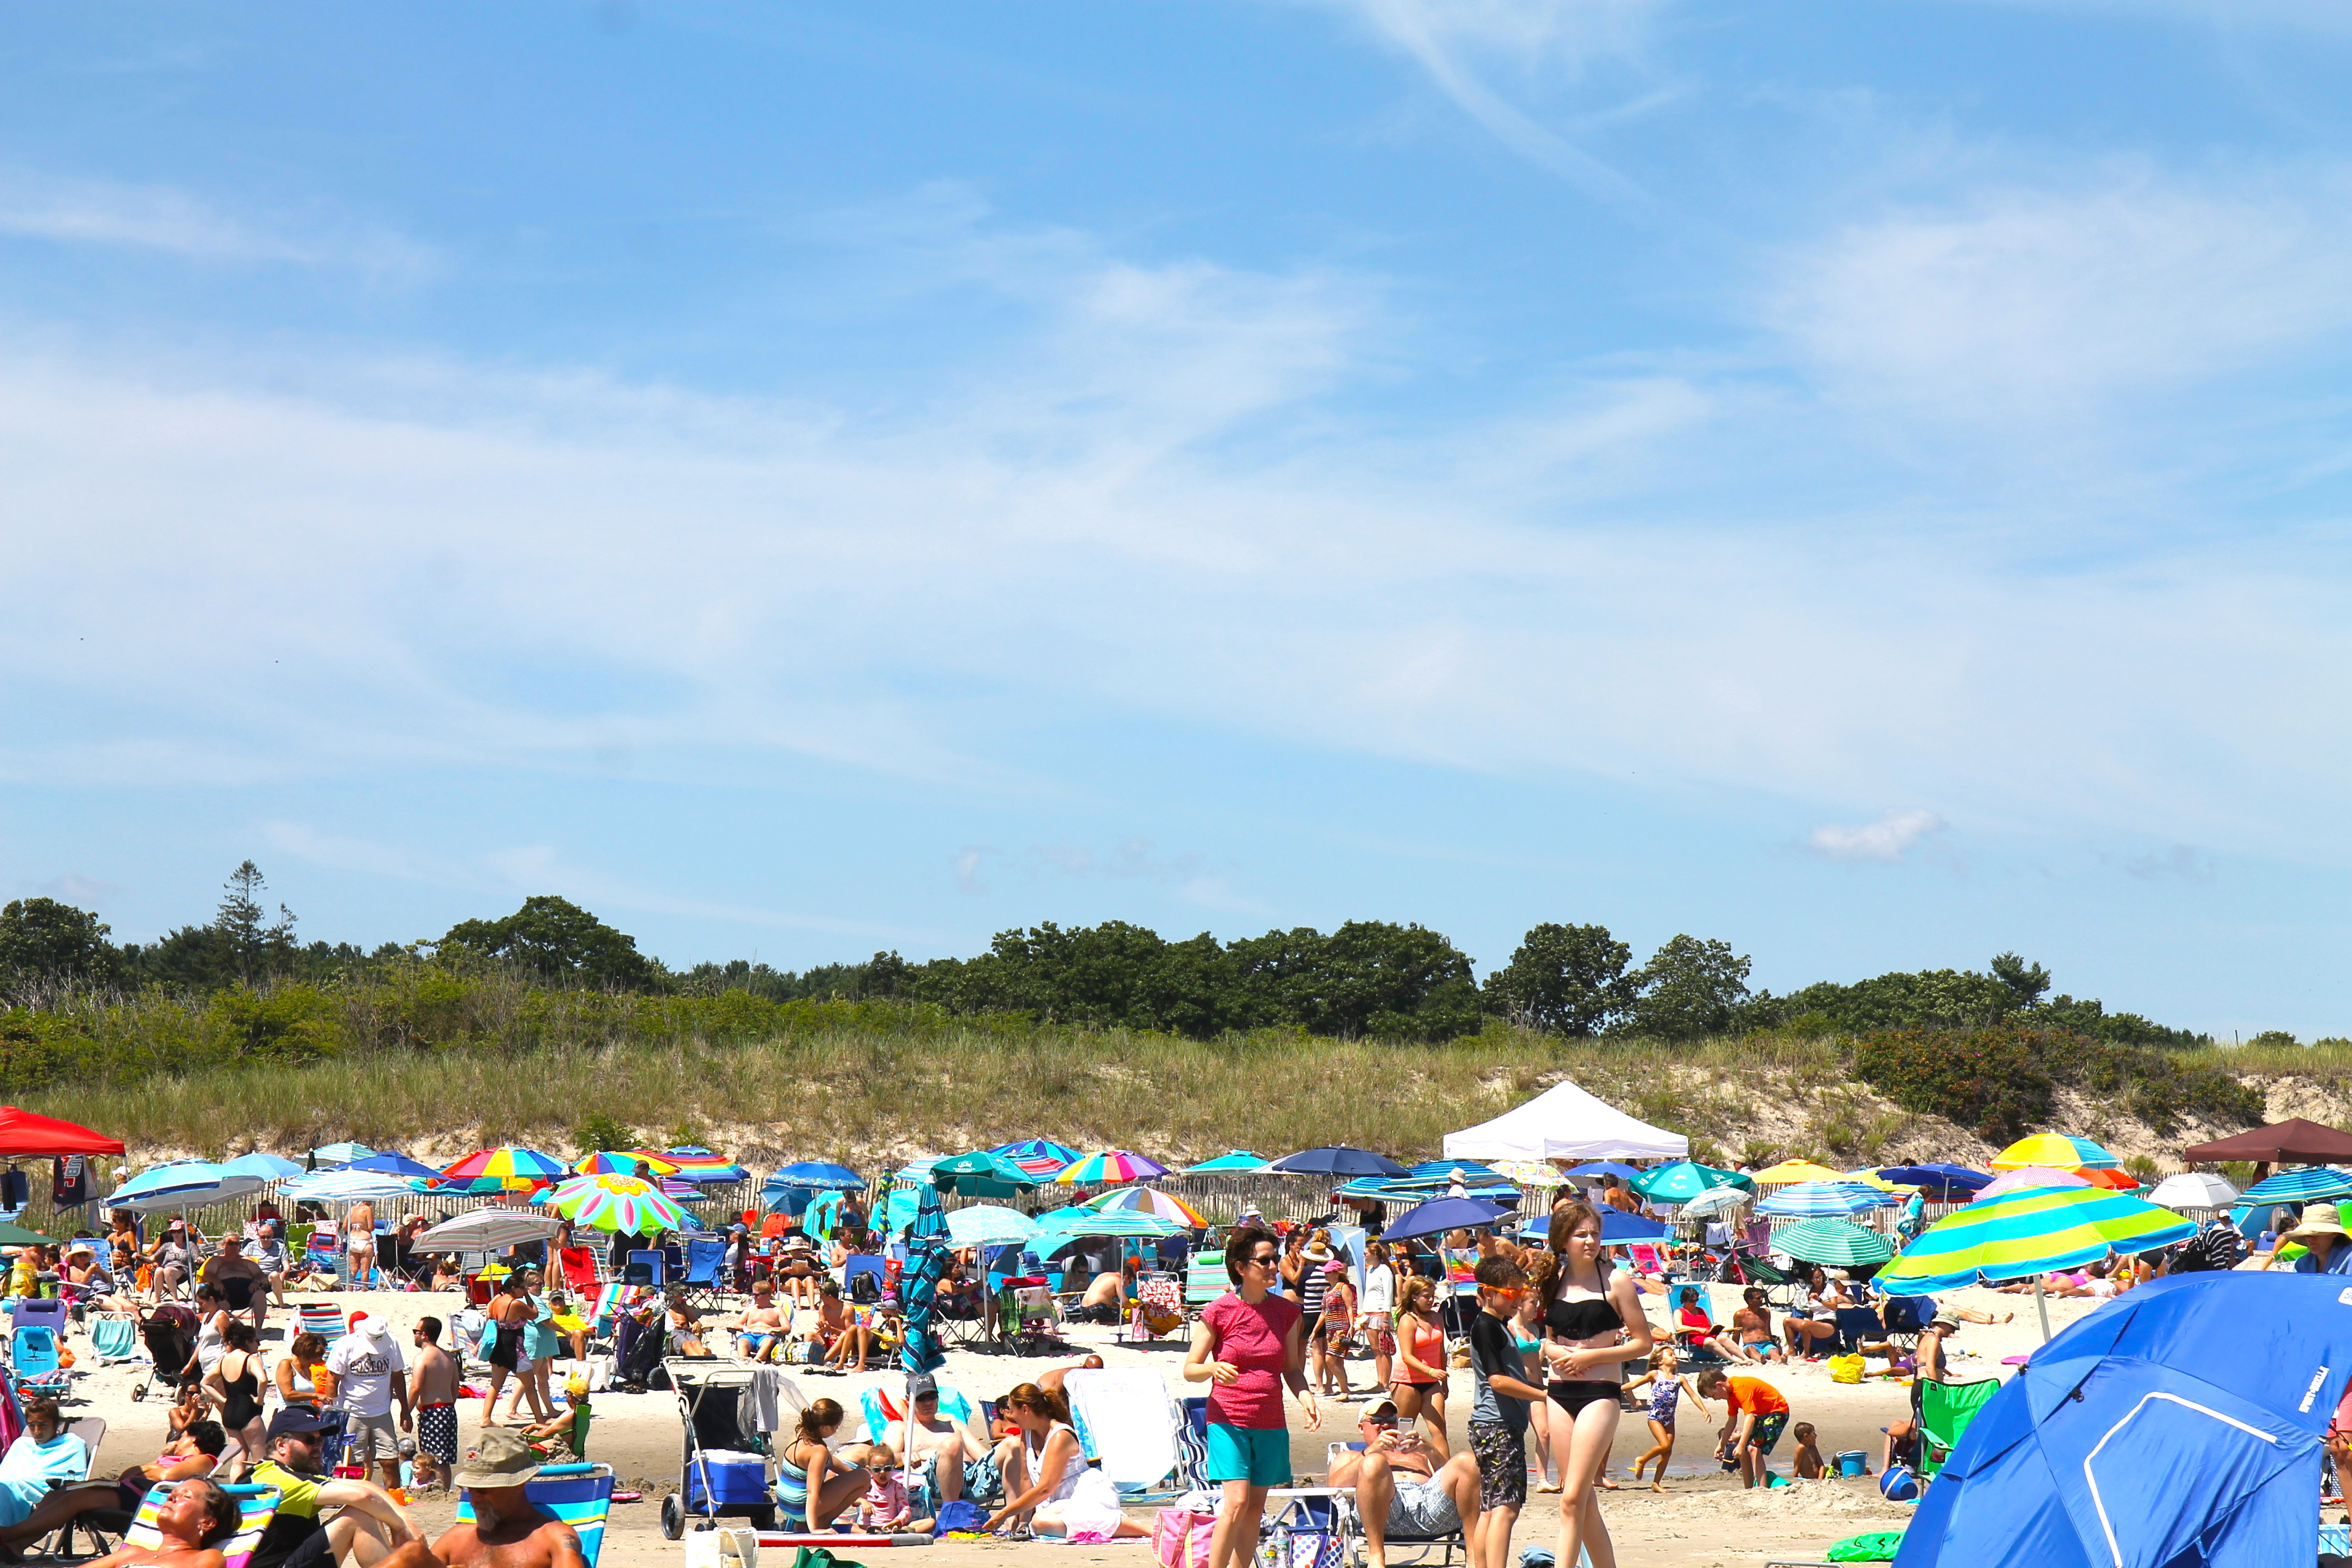 A typical August Ogunquit beach day.